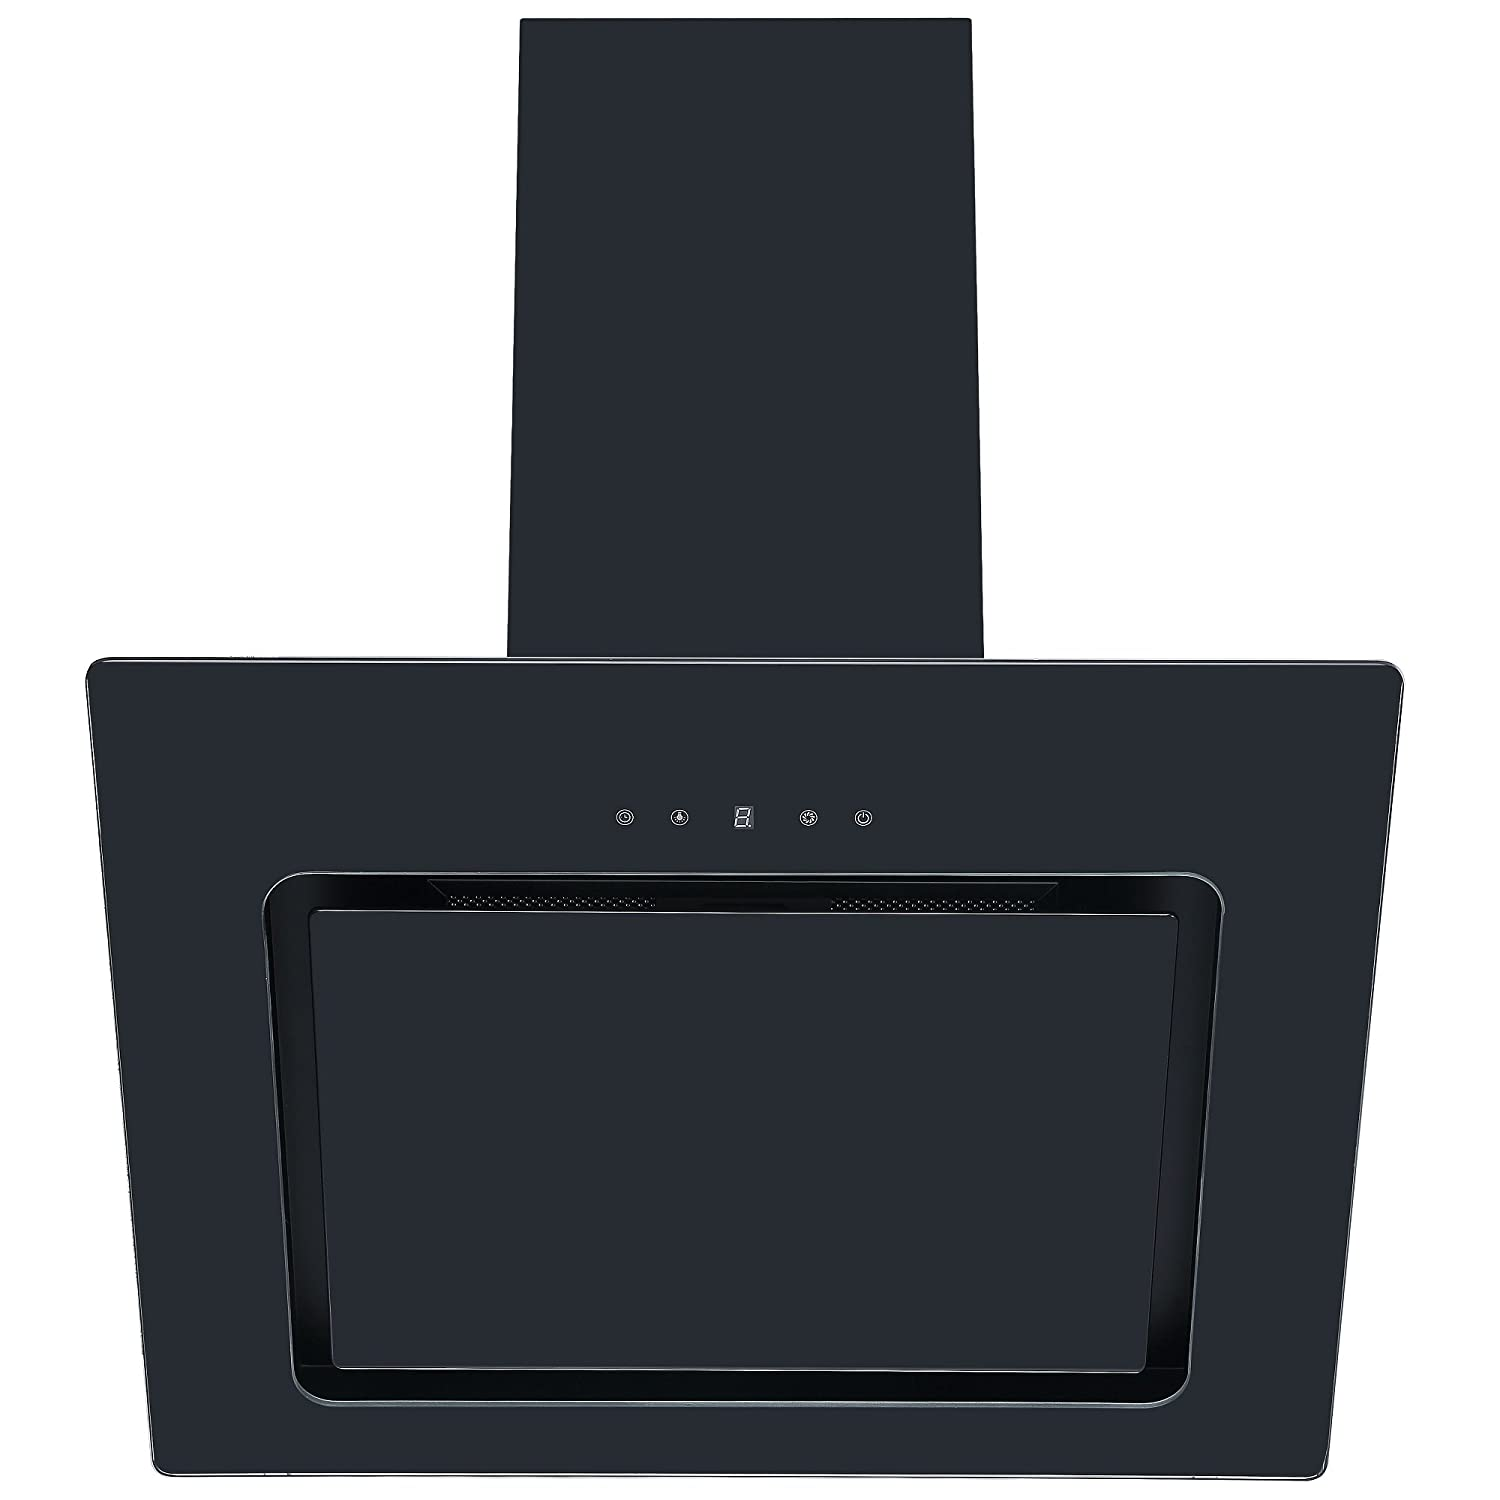 Cookology VER605BK 60cm Black Angled Glass Chimney Cooker Hood | Touch Controls [Energy Class C]